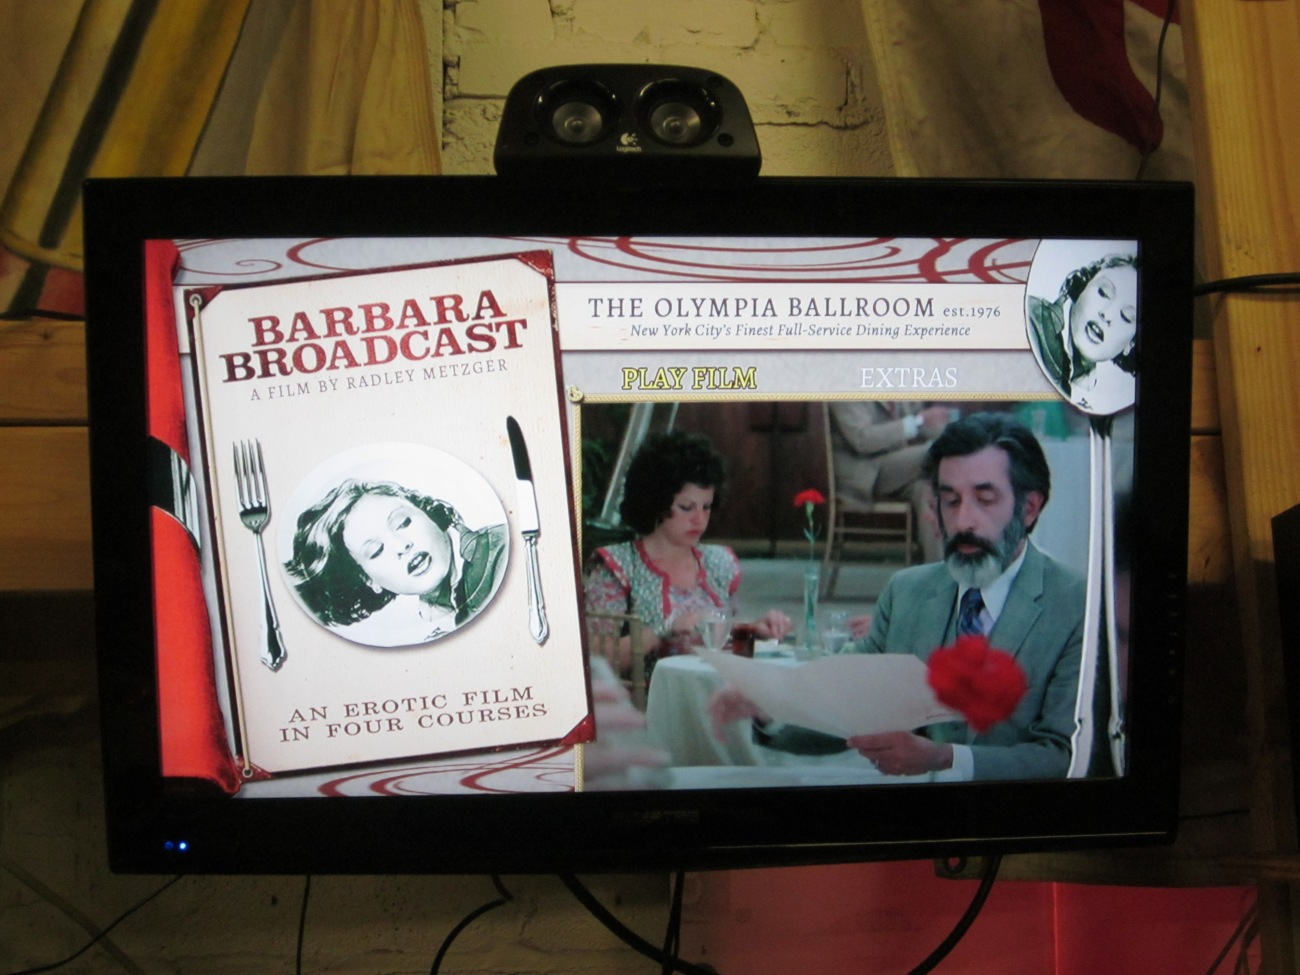 Barbara Broadcast Blu ray Main Menu on Flatscreen TV